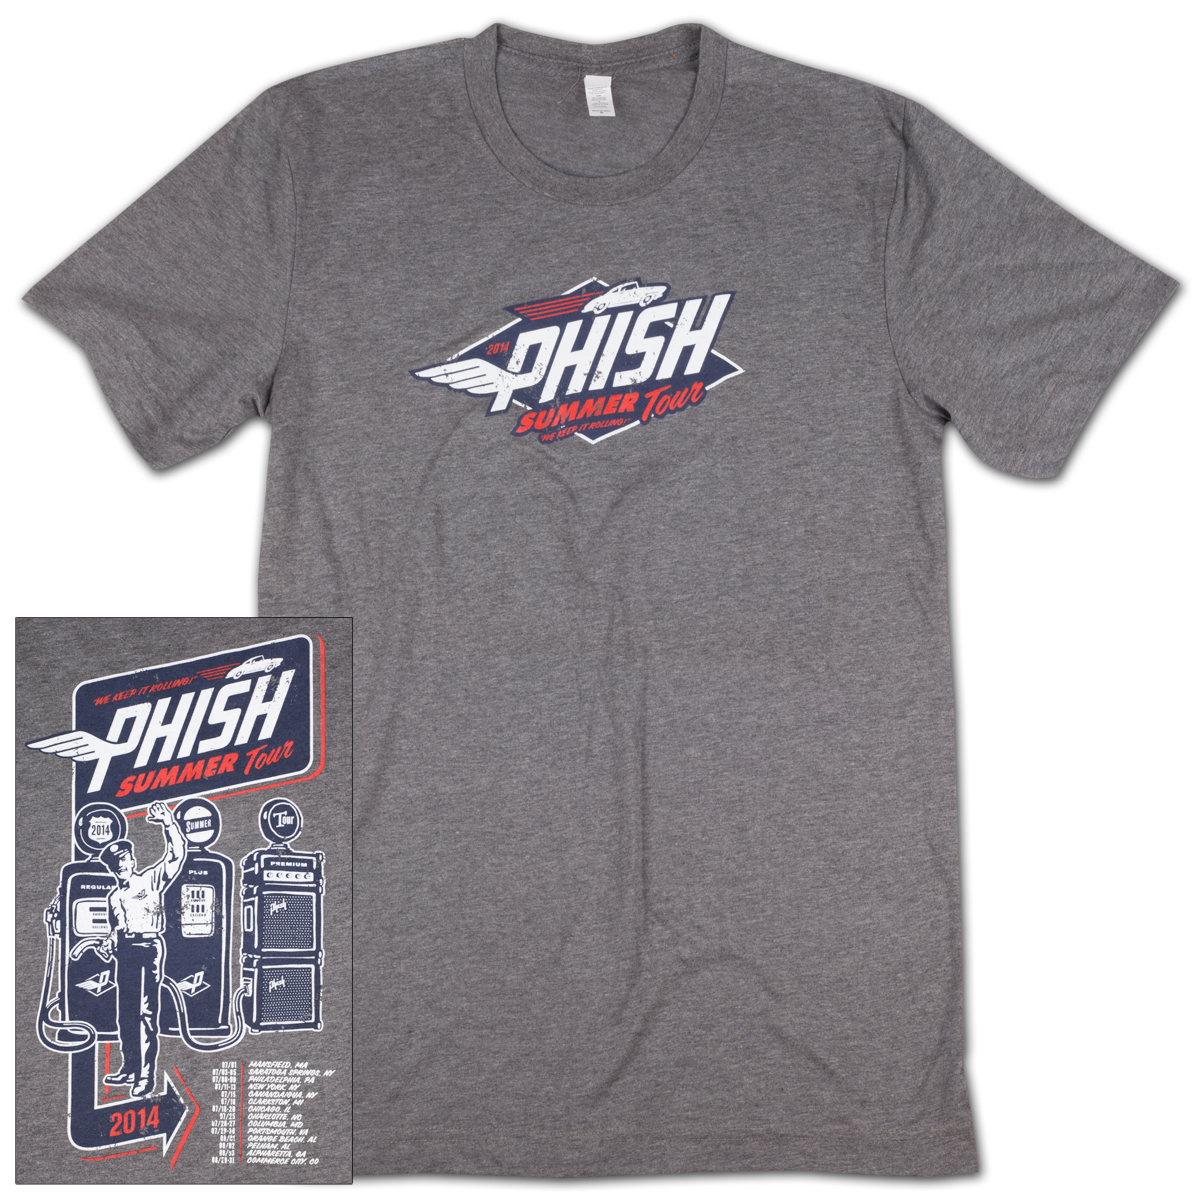 Gas Man Summer 2014 Tour T on Vintage Gray